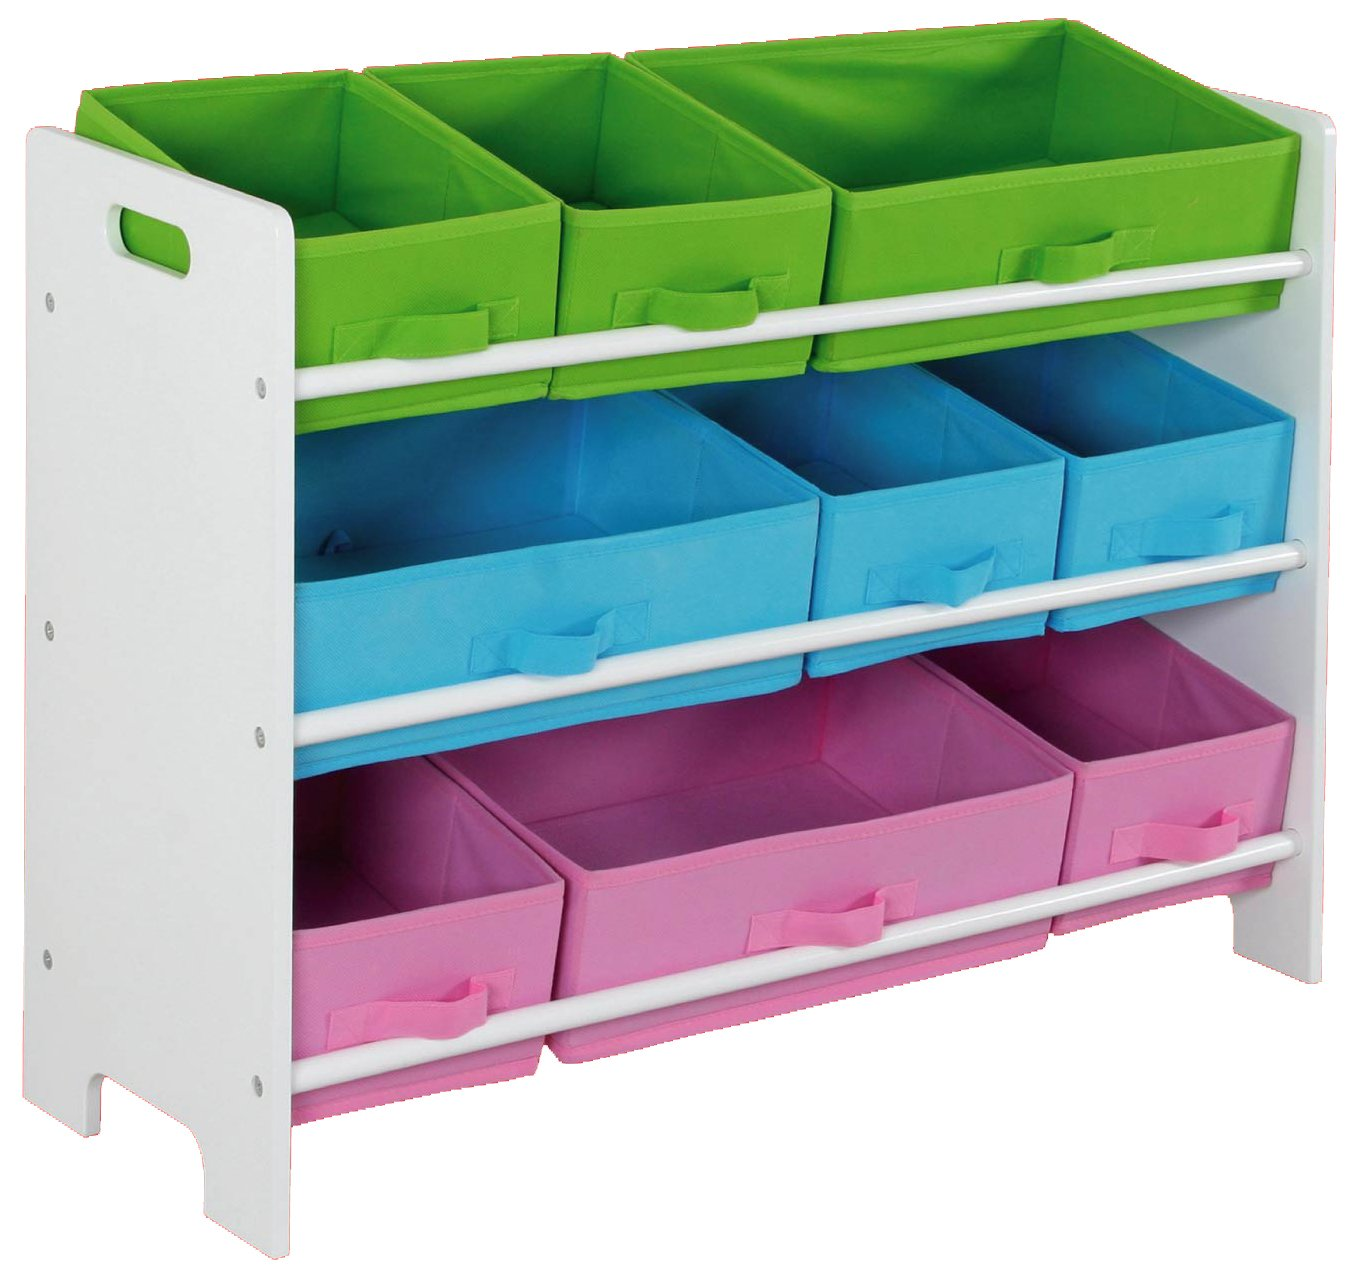 Home Basics SS00685 Storage Shelf with 9 Bins